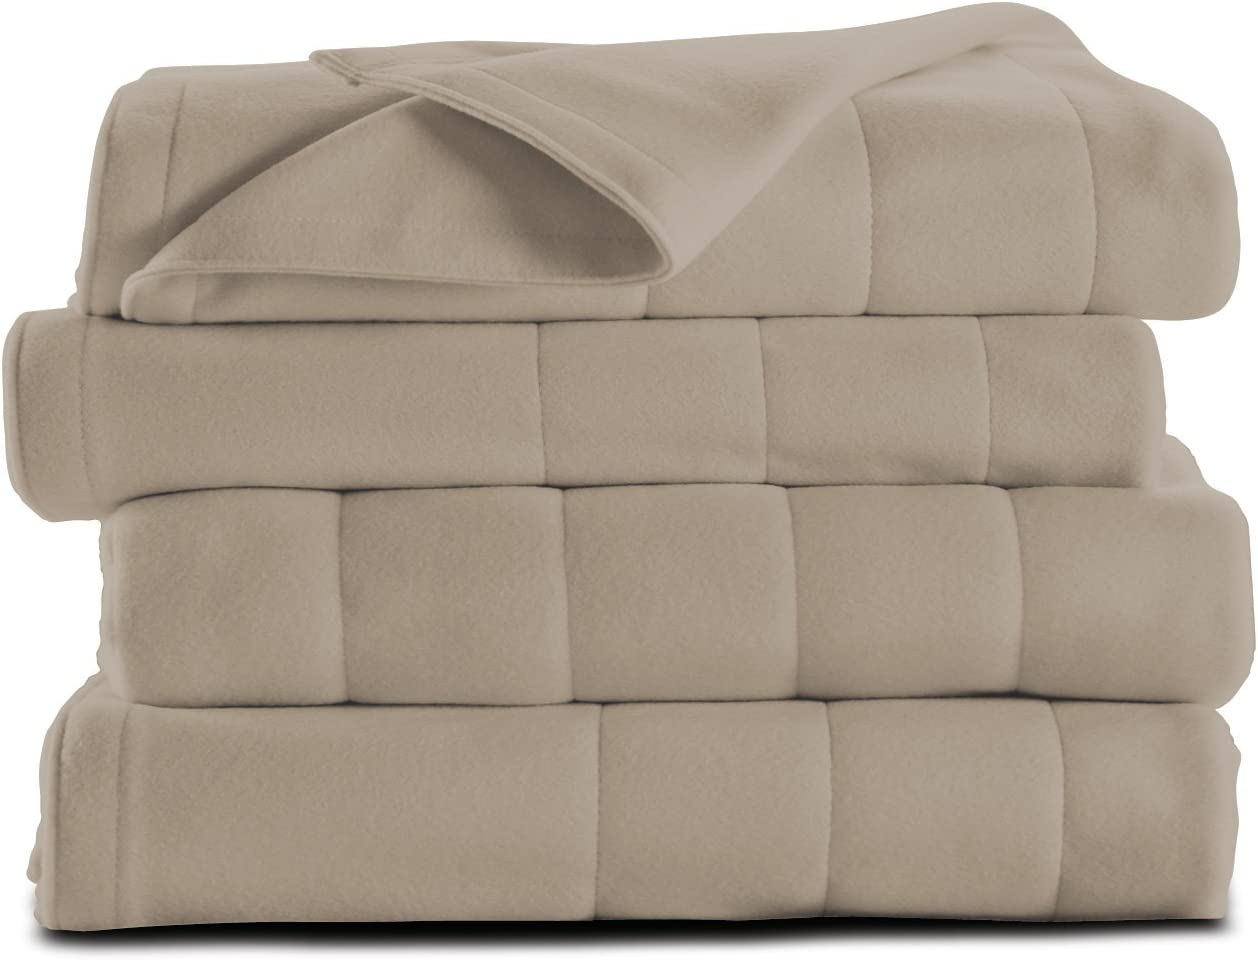 Sunbeam Heated Blanket | Microplush, 10 Heat Settings, Mushroom